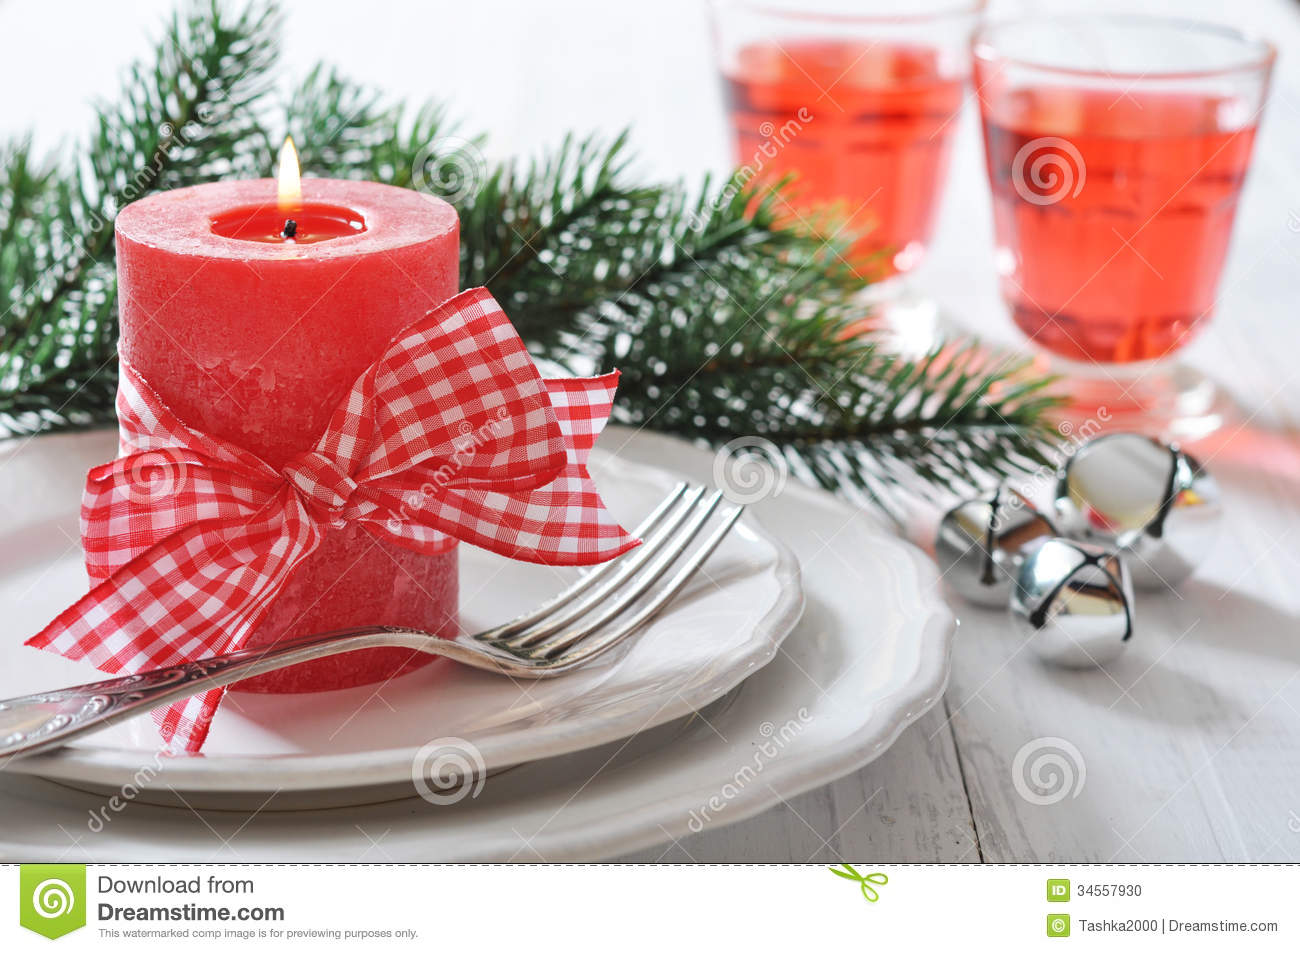 Christmas table setting with red candle and fir tree branch